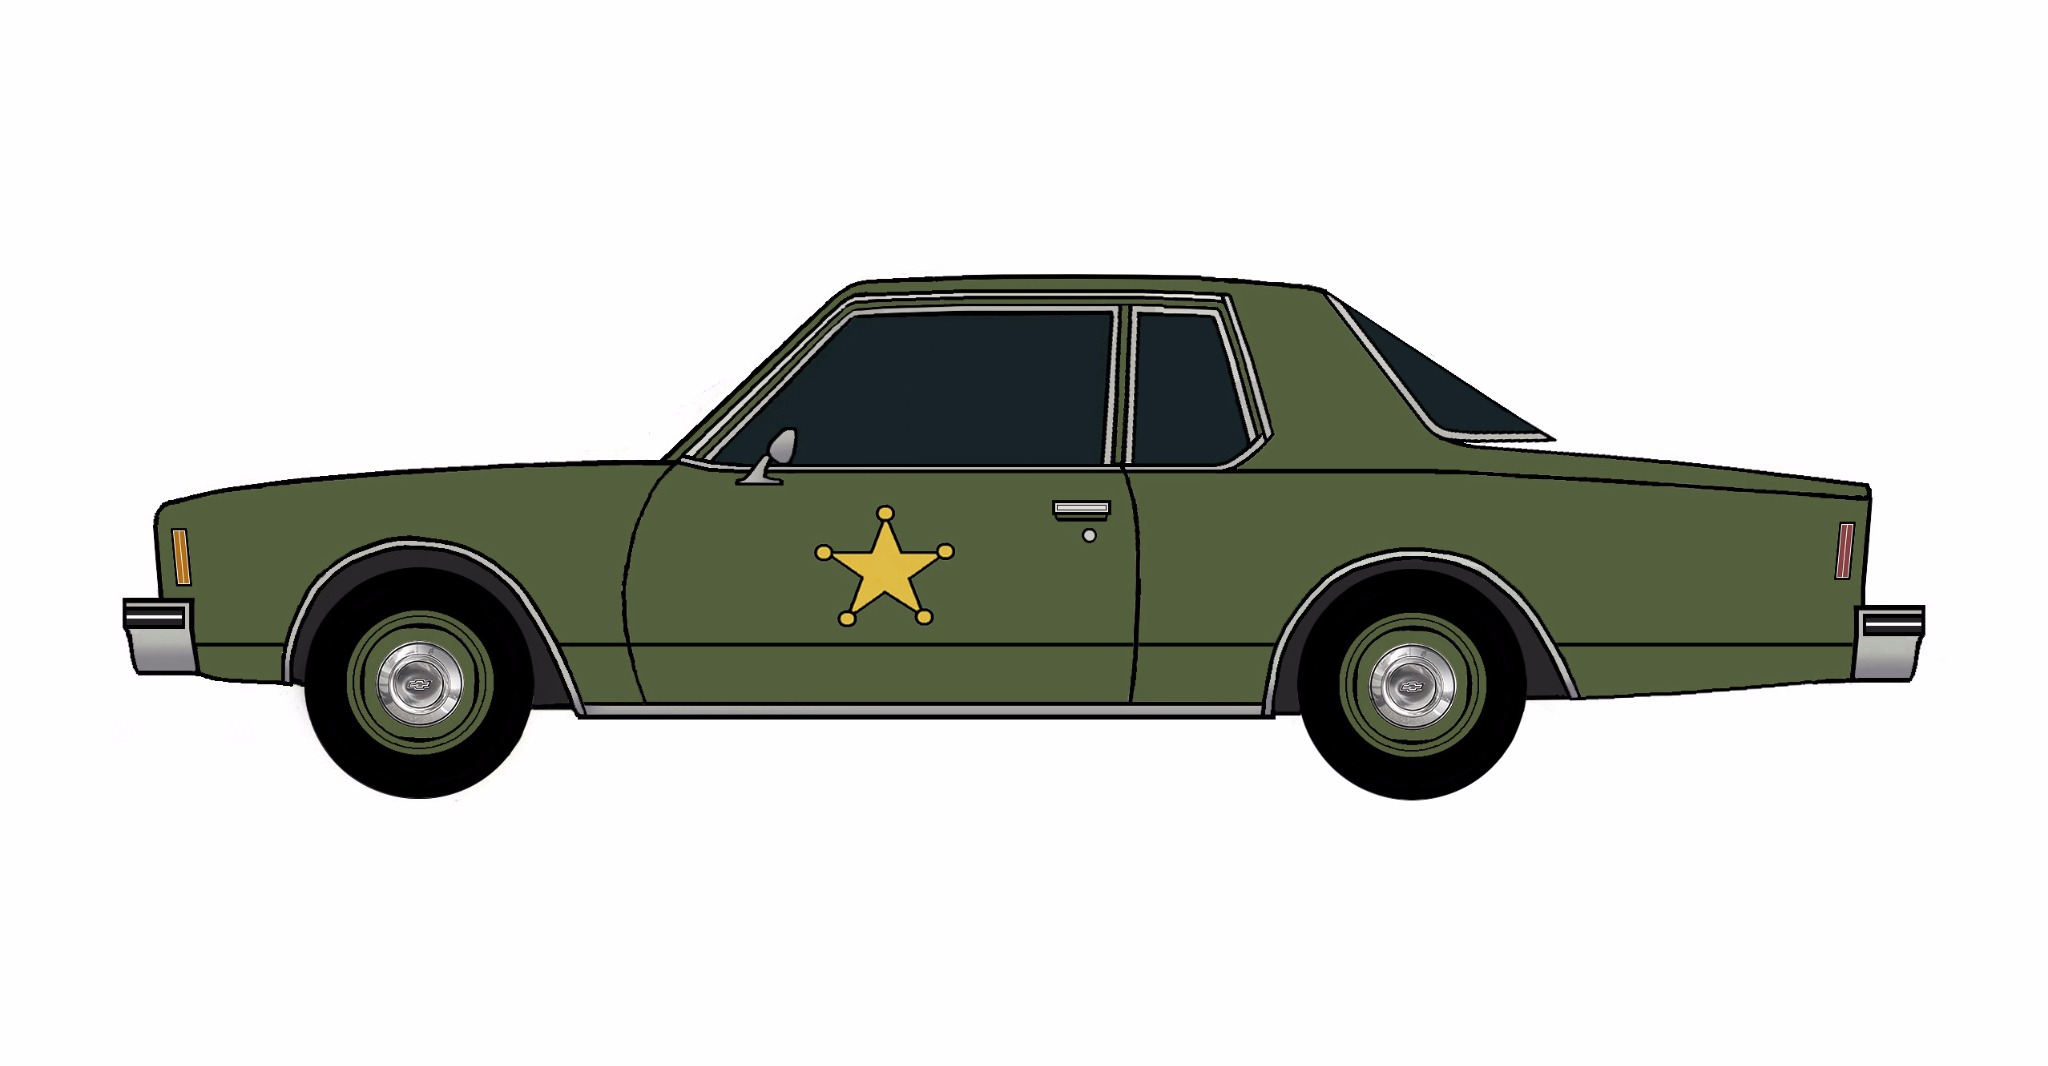 1978 Chevy Impala Police Coupe ARMY GREEN